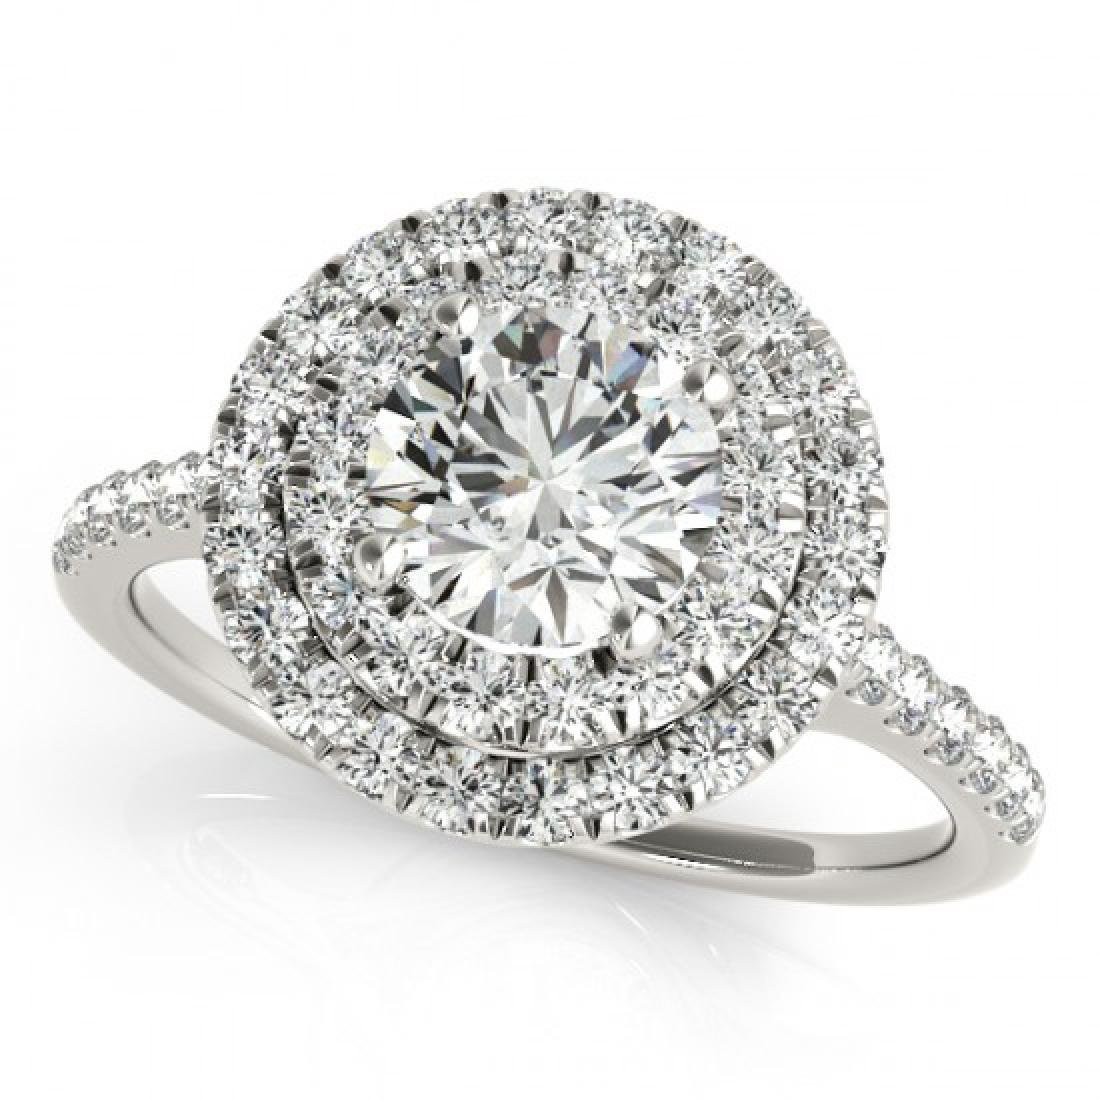 1.45 CTW Certified VS/SI Diamond 2Pc Set Solitaire Halo